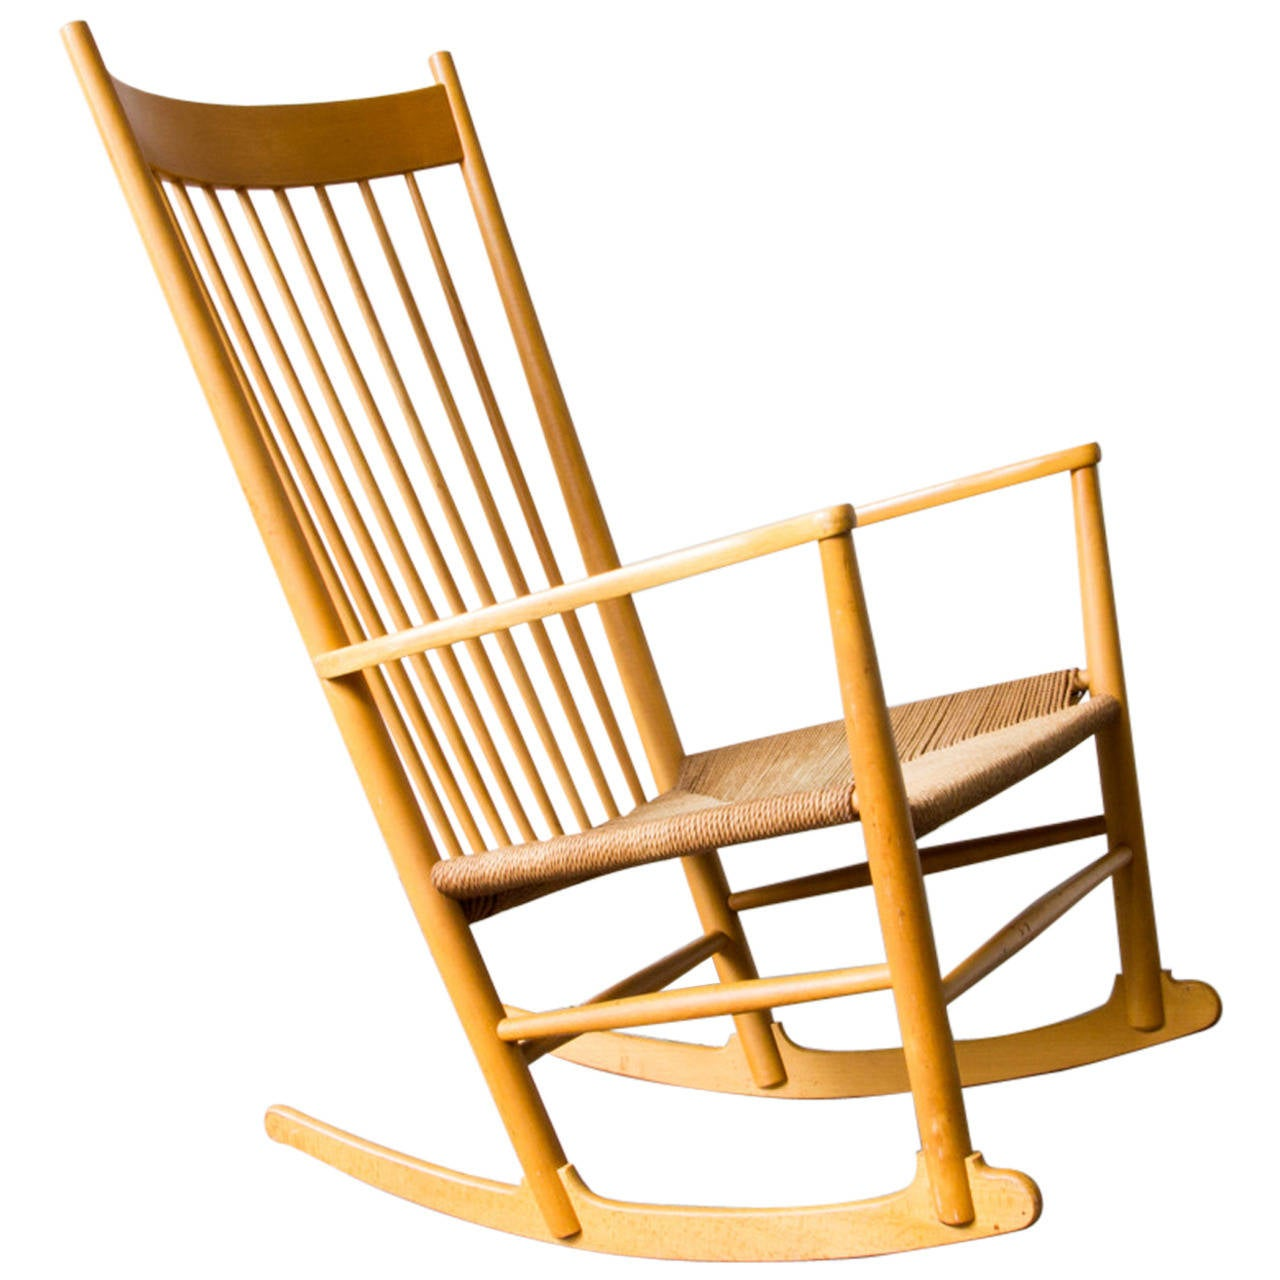 Hans Wegner J16 Rocking Chair At 1stdibs. Full resolution‎  portraiture, nominally Width 1280 Height 1280 pixels, portraiture with #C77904.